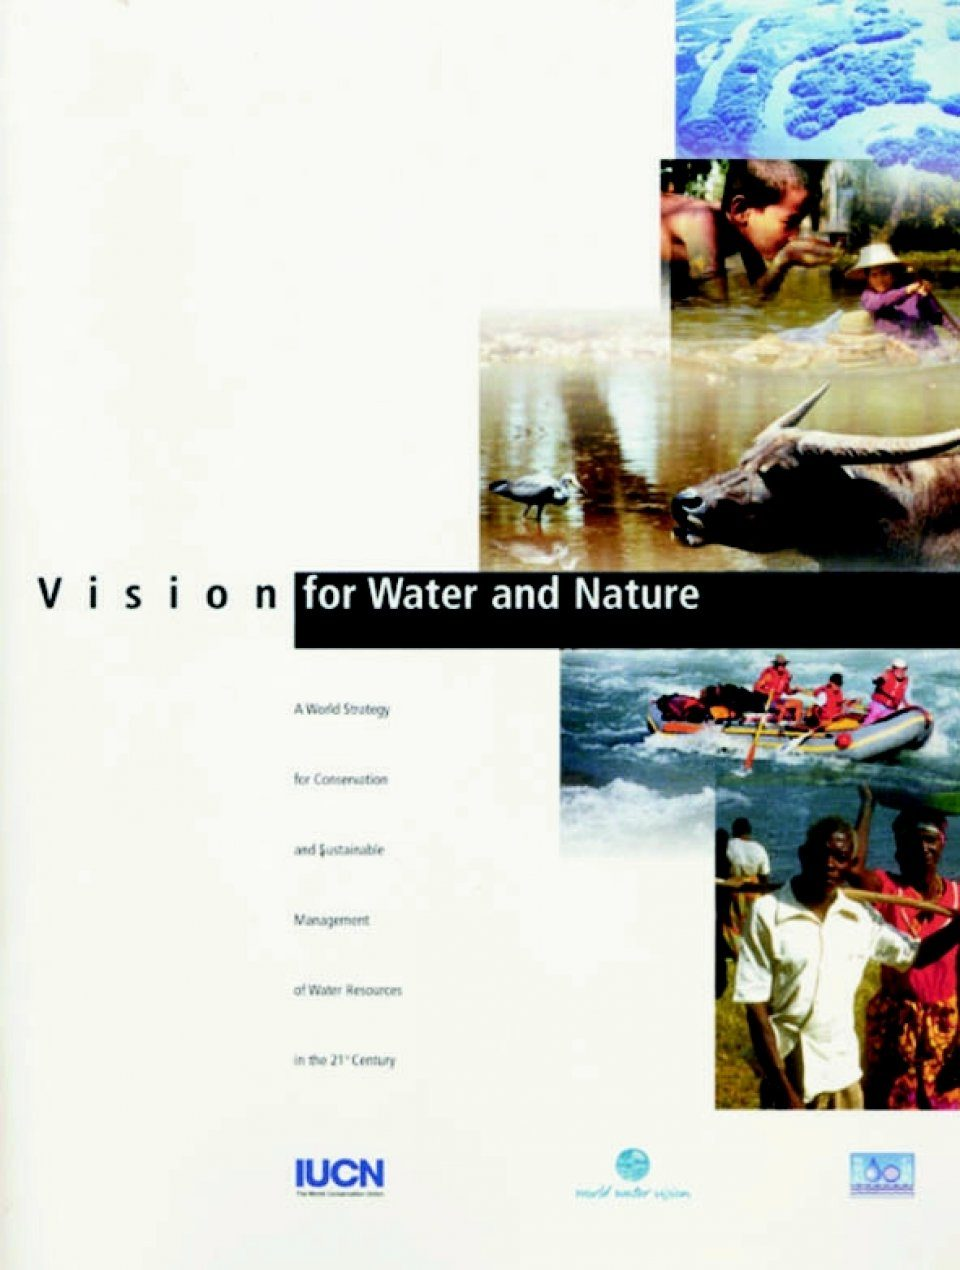 Vision for Water and Nature: World Strategy for Conservation and Sustainable Management of Water Resources in the 21st Century